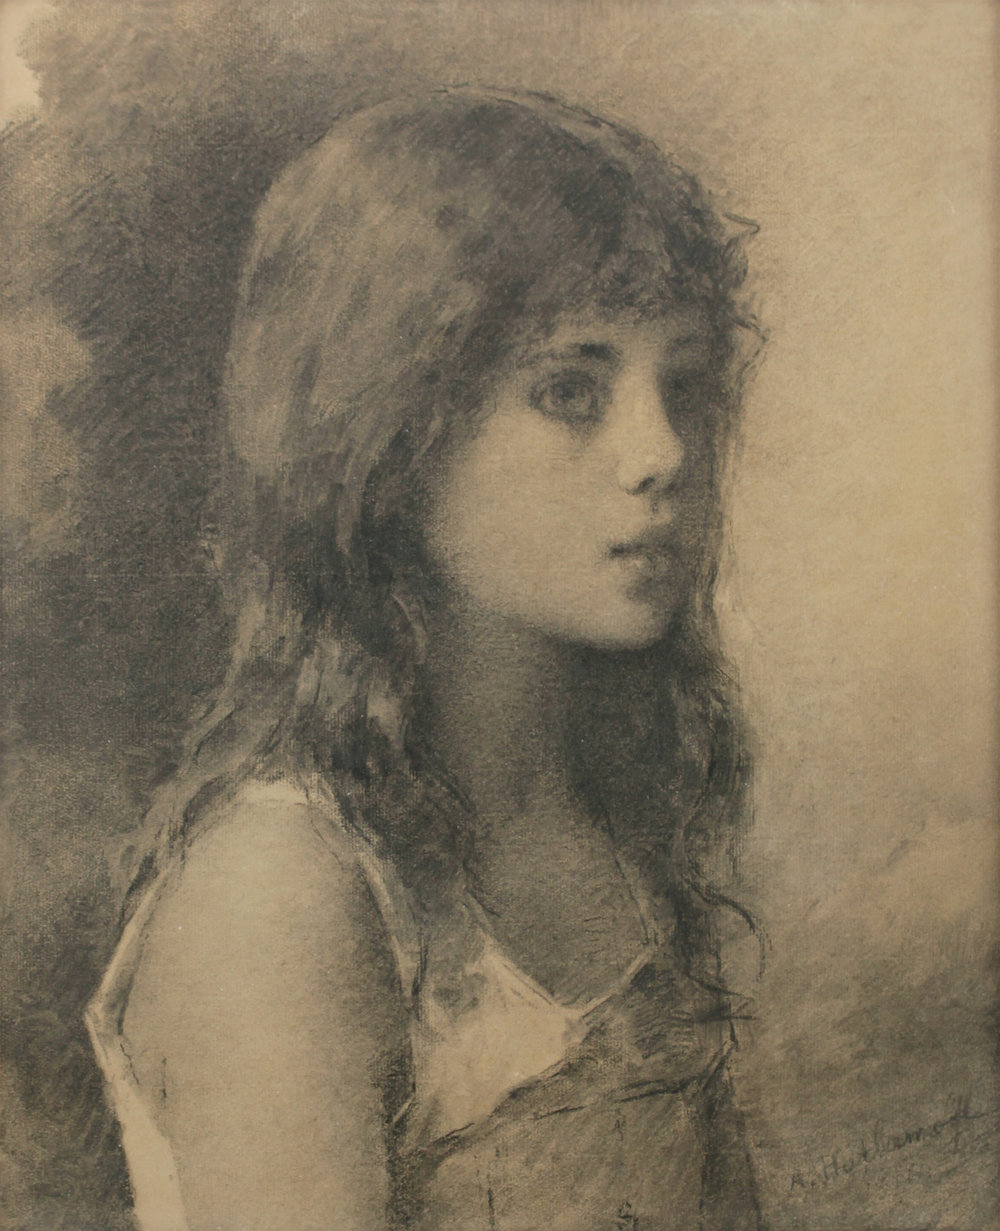 Alexis Harlamoff (Russian 1842-1915) 'Portrait of Girl'